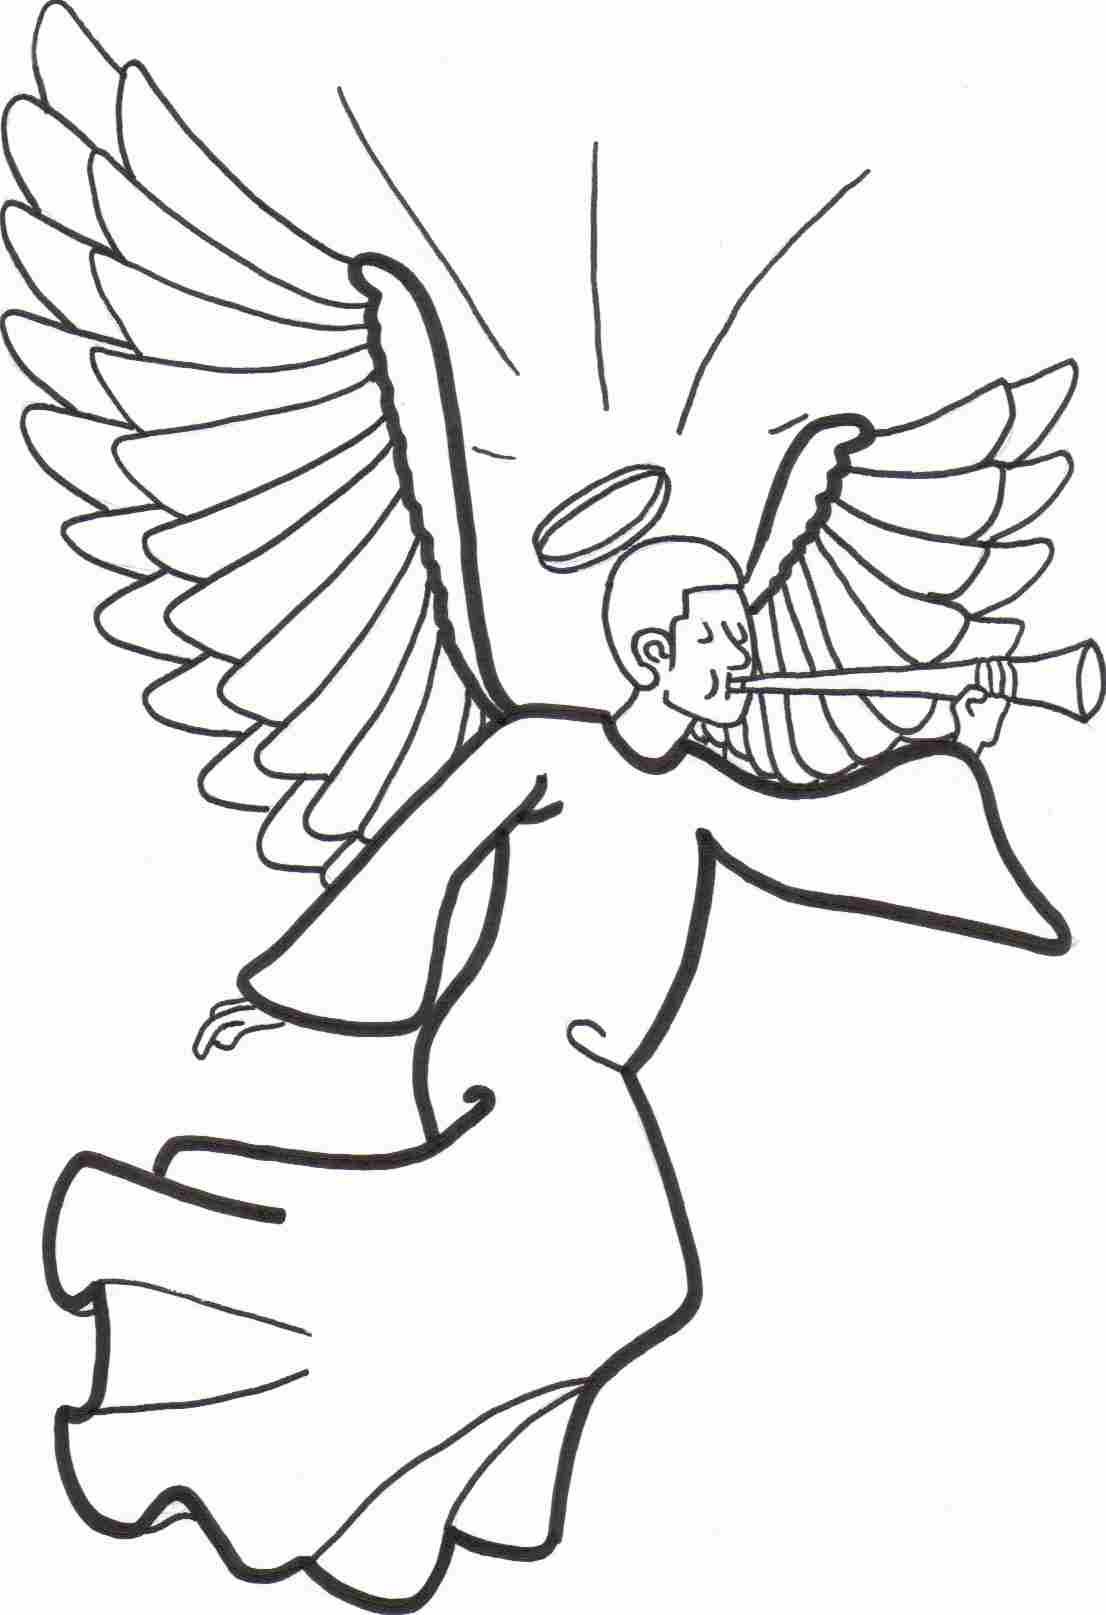 angel coloring sheet free printable angel coloring pages for kids cool2bkids sheet coloring angel